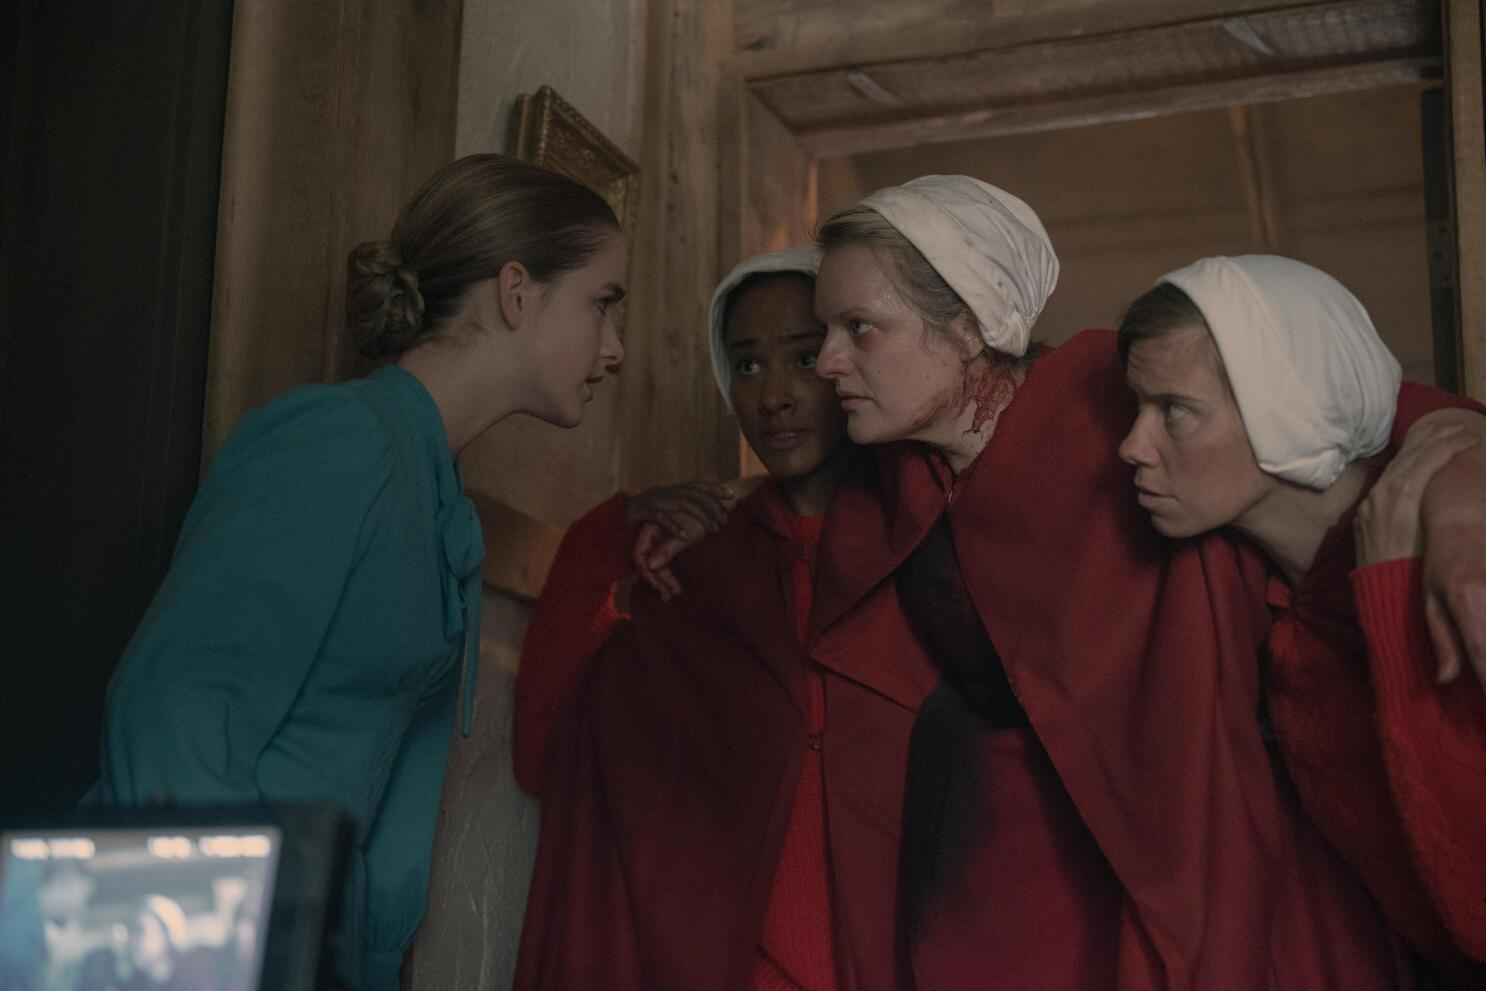 Why I'm not giving up on 'The Handmaid's Tale' in Season 4 - Los Angeles Times